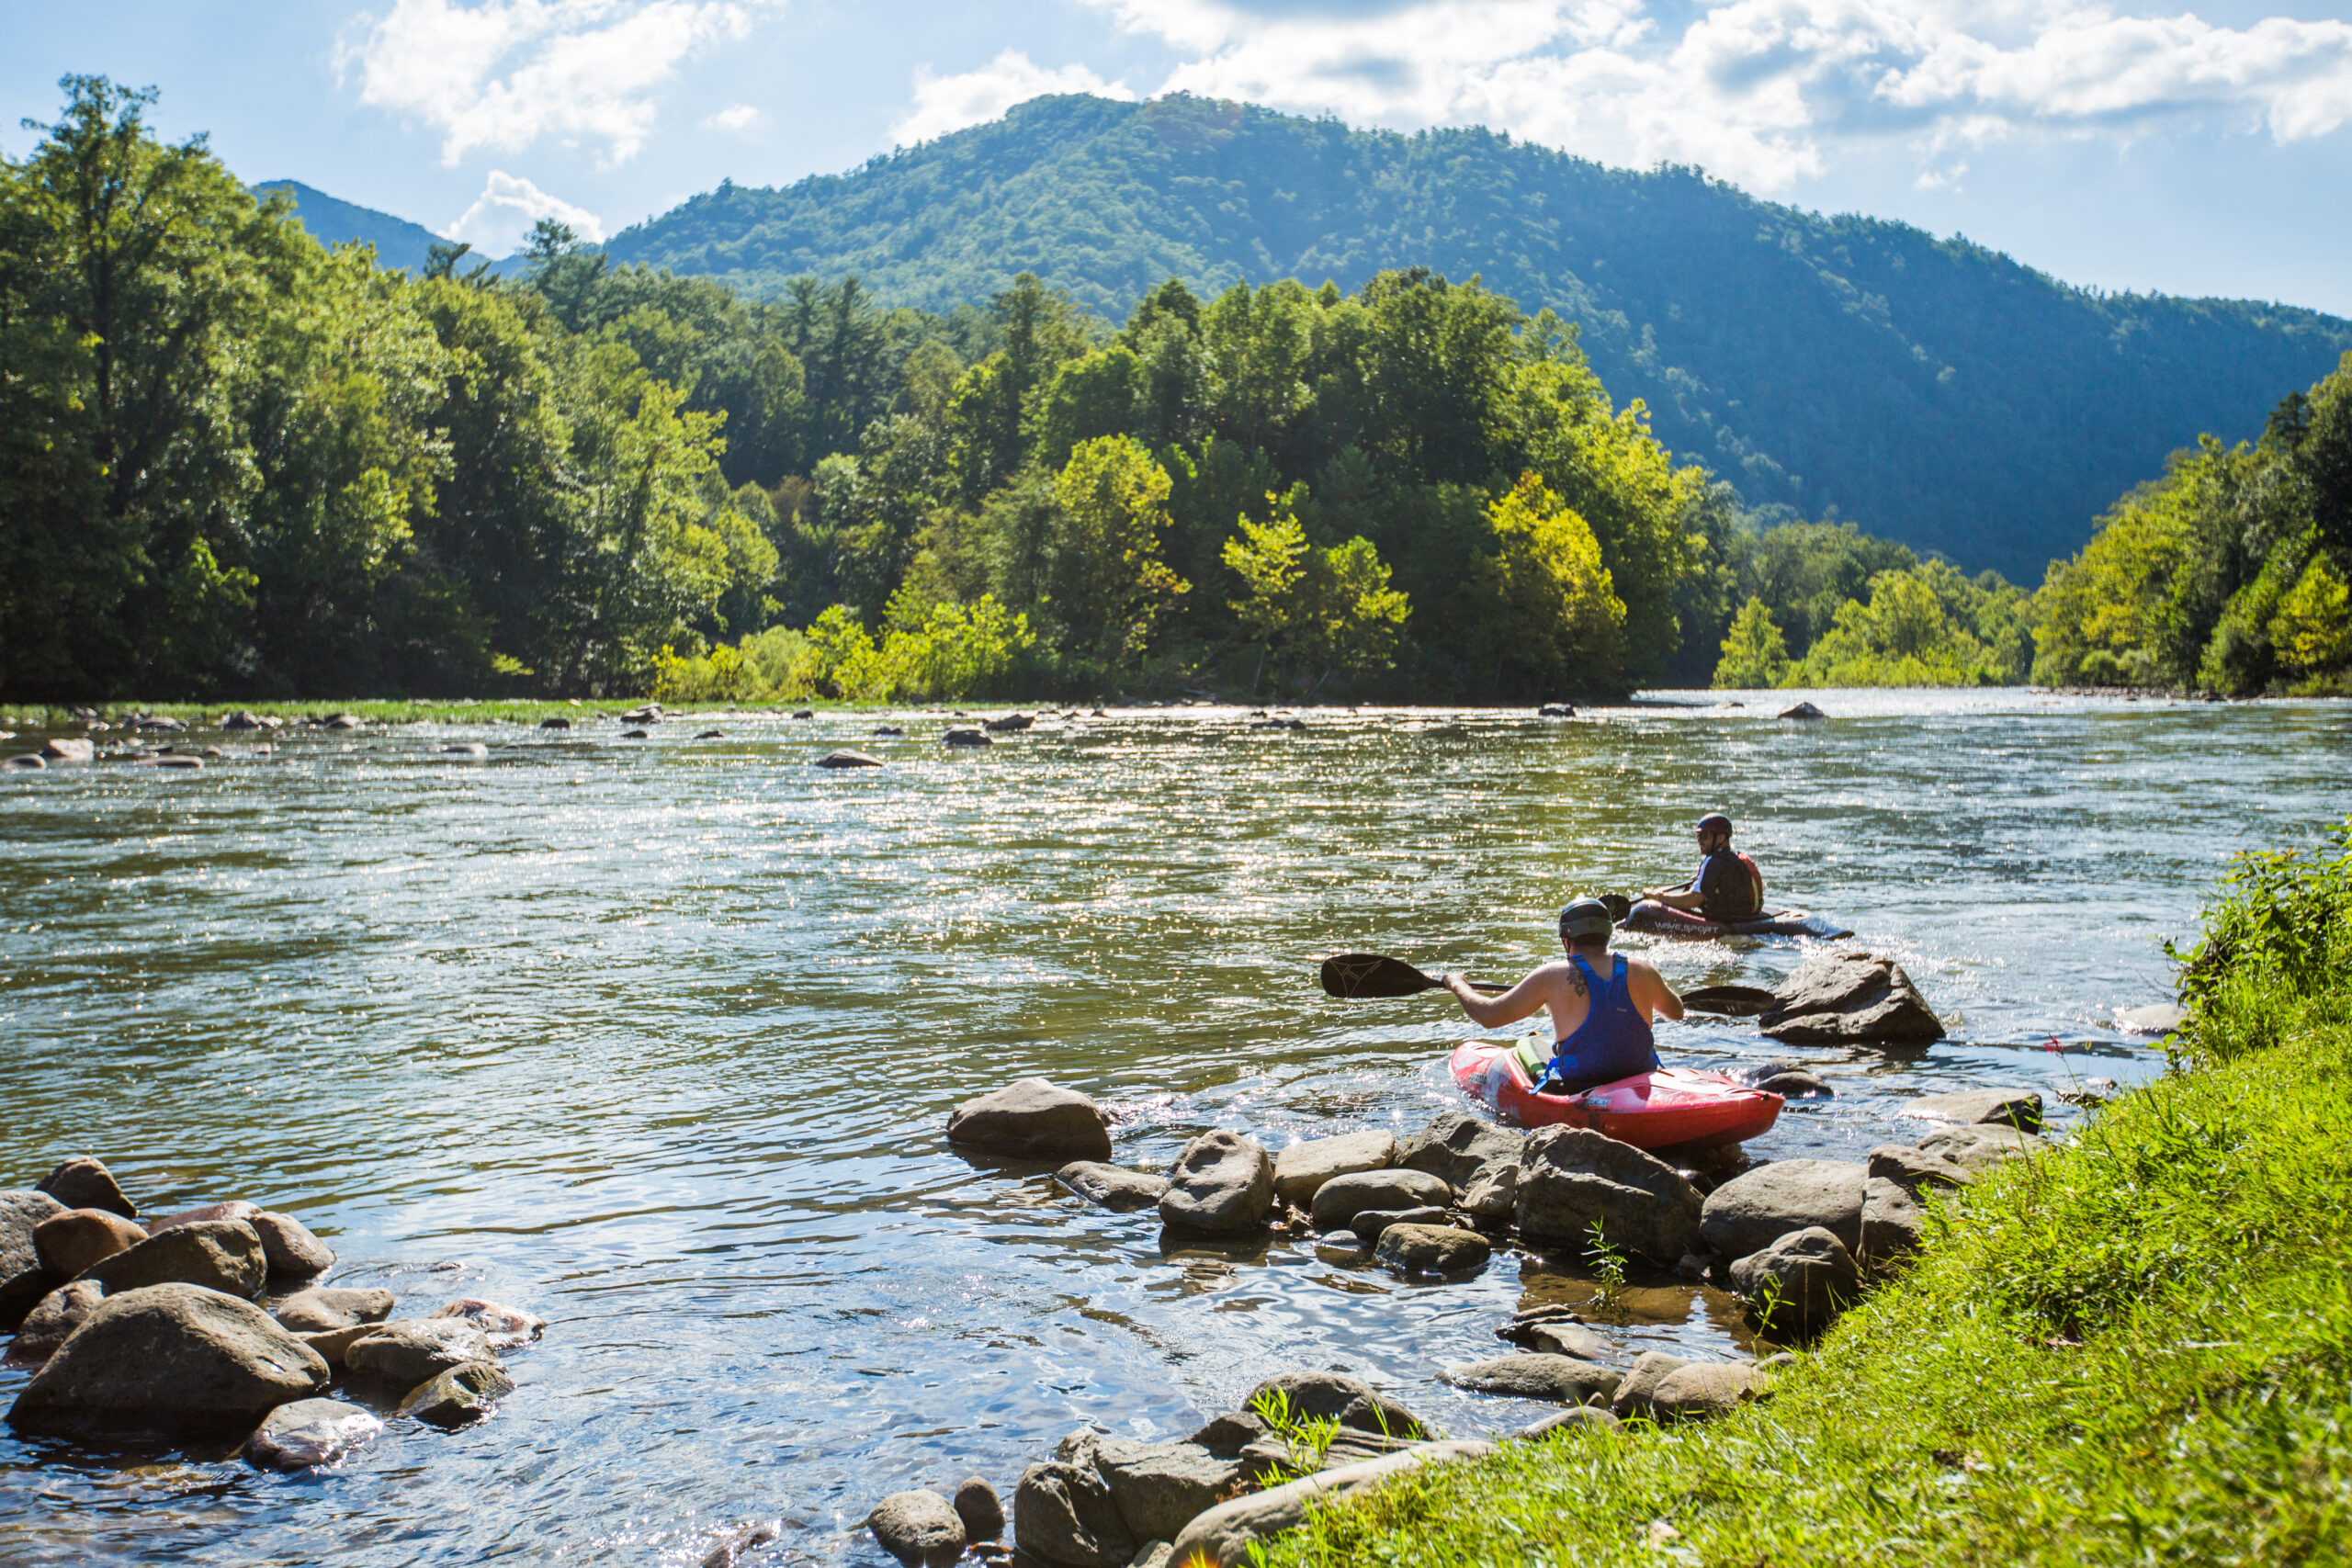 Canoeing on the river in Unicoi, Tennessee